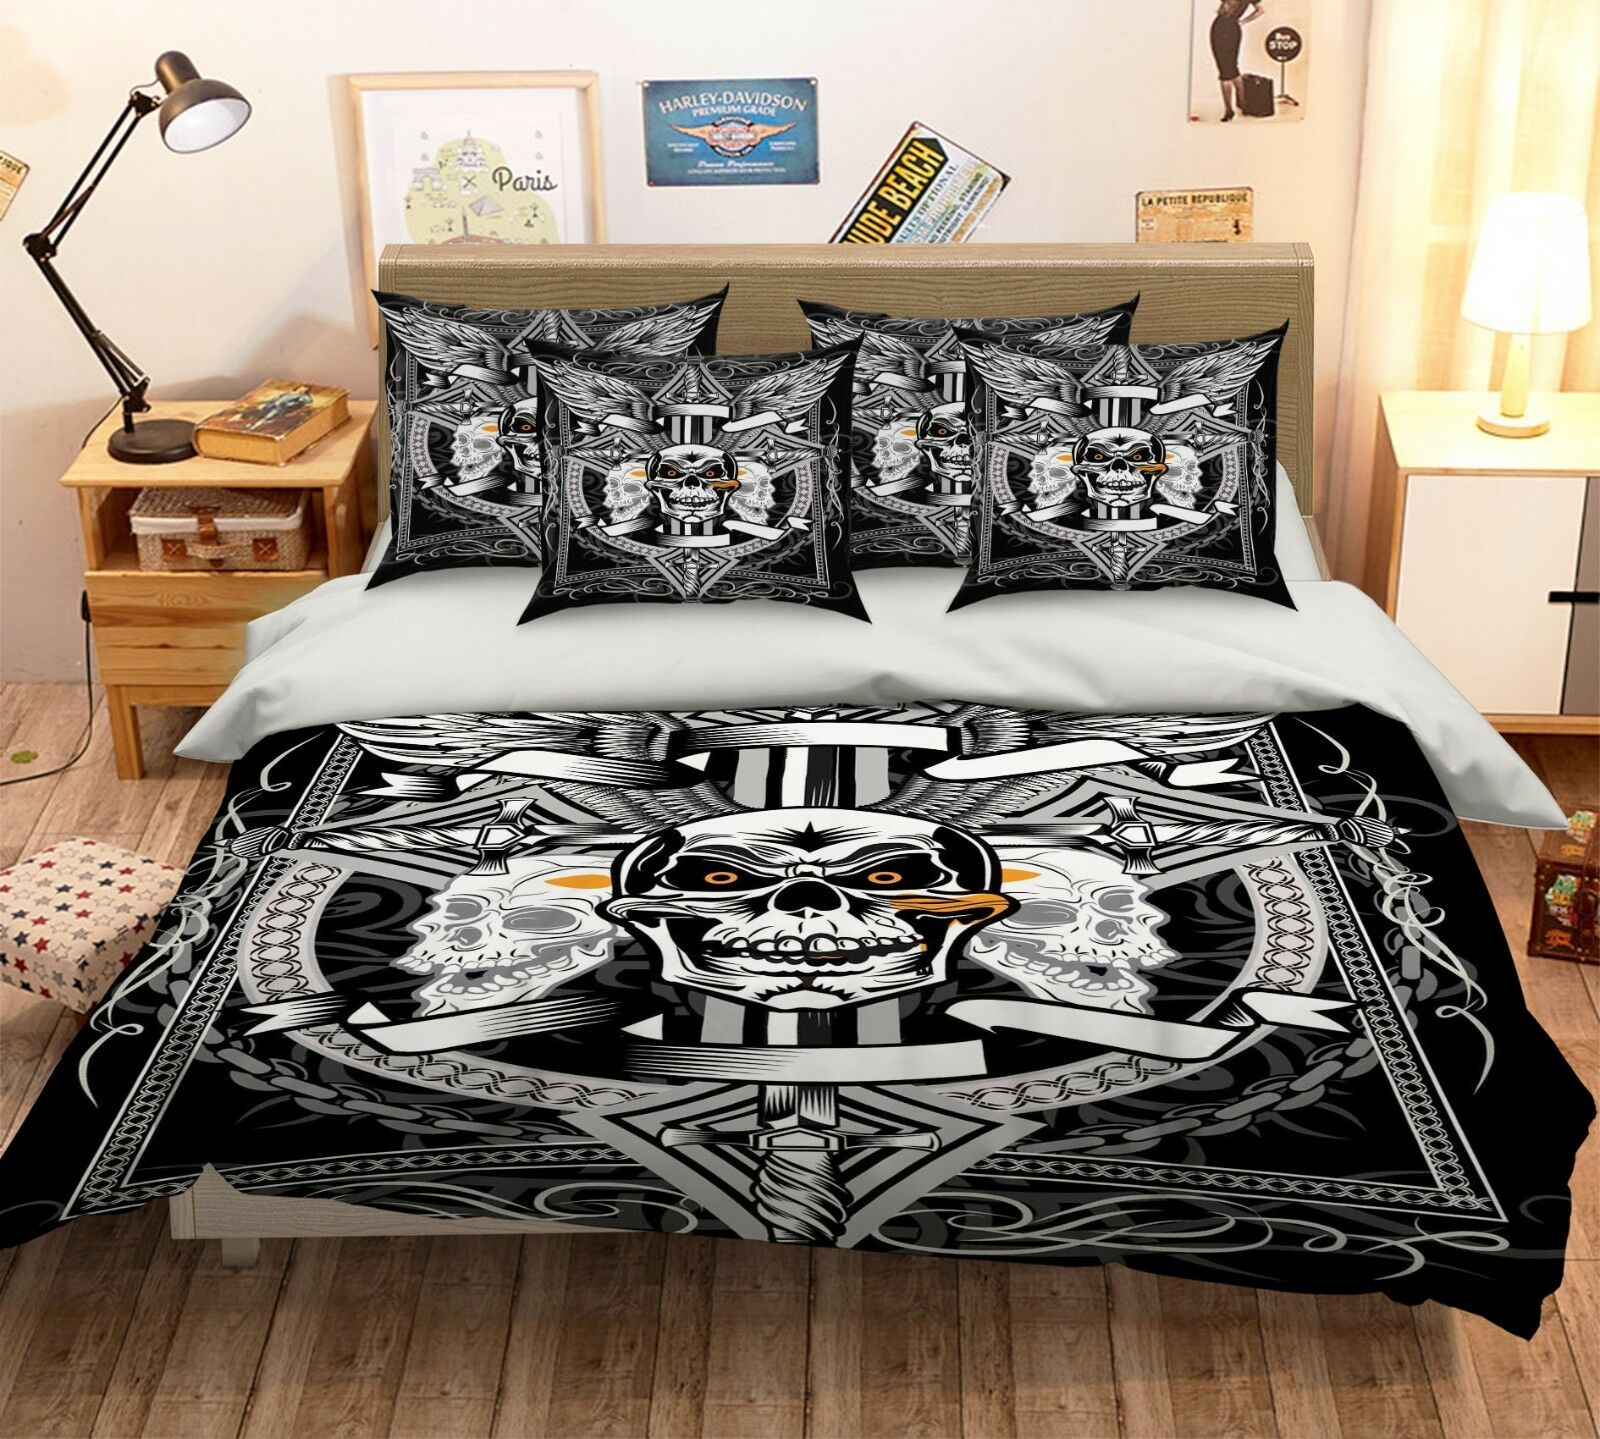 3D Skull Texture 5 Bed Pillowcases Quilt Duvet Cover Set Single Queen US